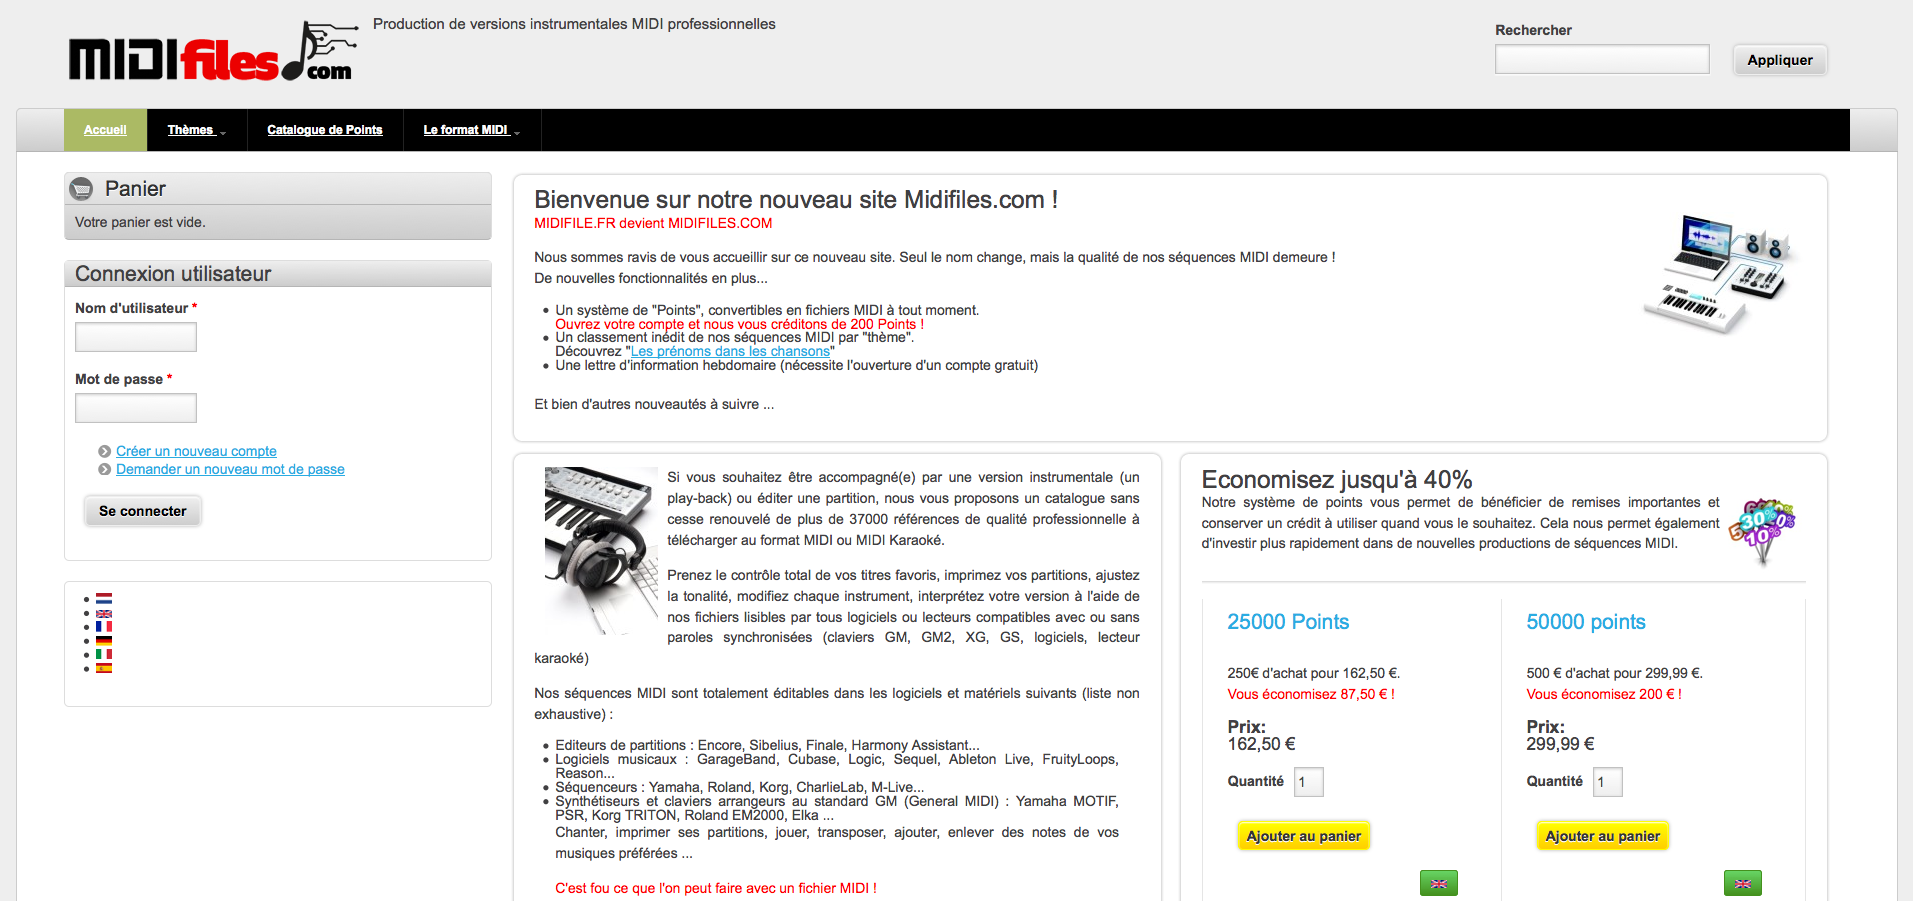 Midifiles com | Drupal Commerce